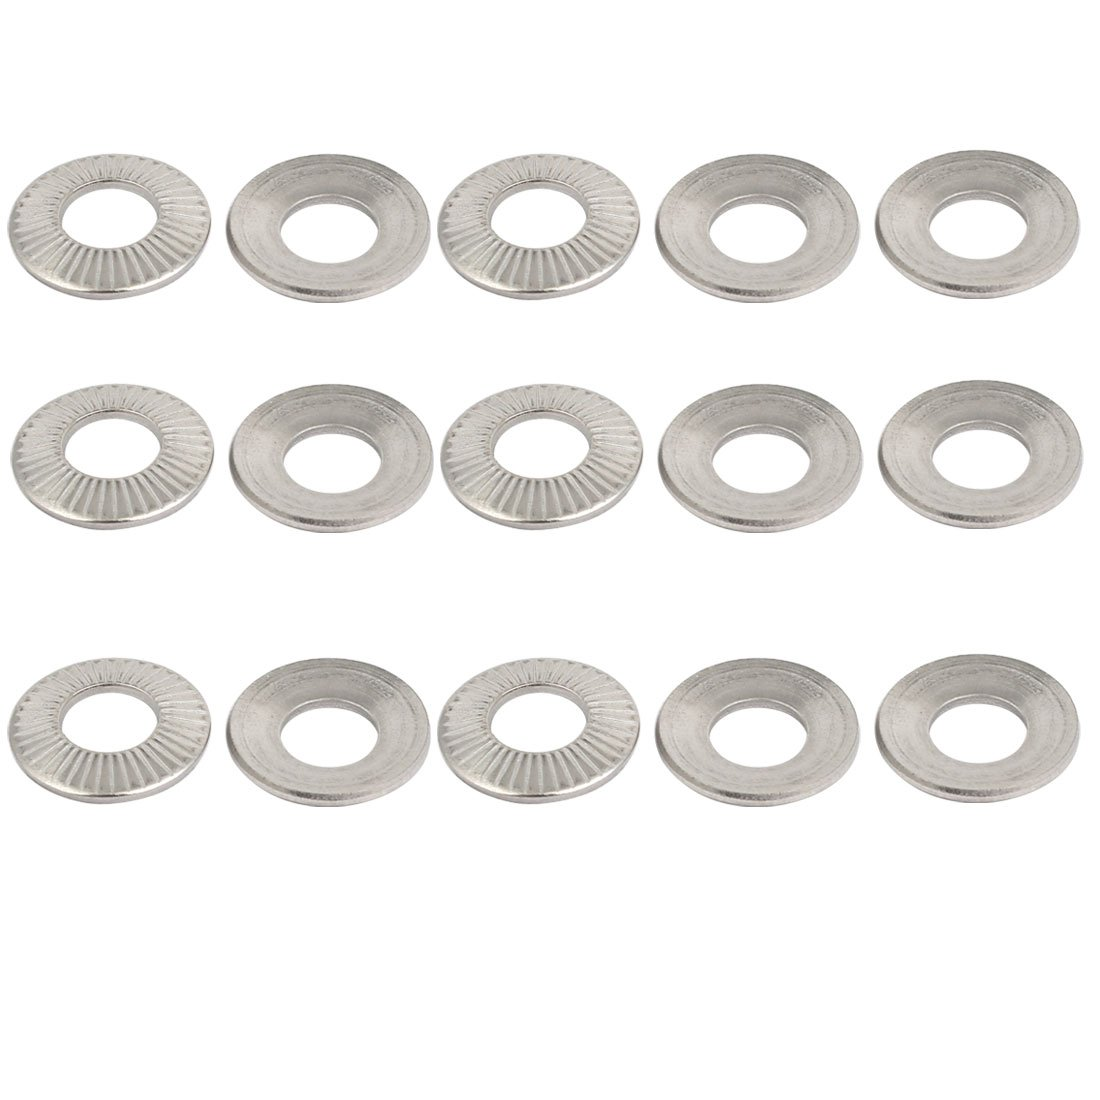 uxcell M8 304 Stainless Steel Industrial Locking Washer Silver Tone 15pcs